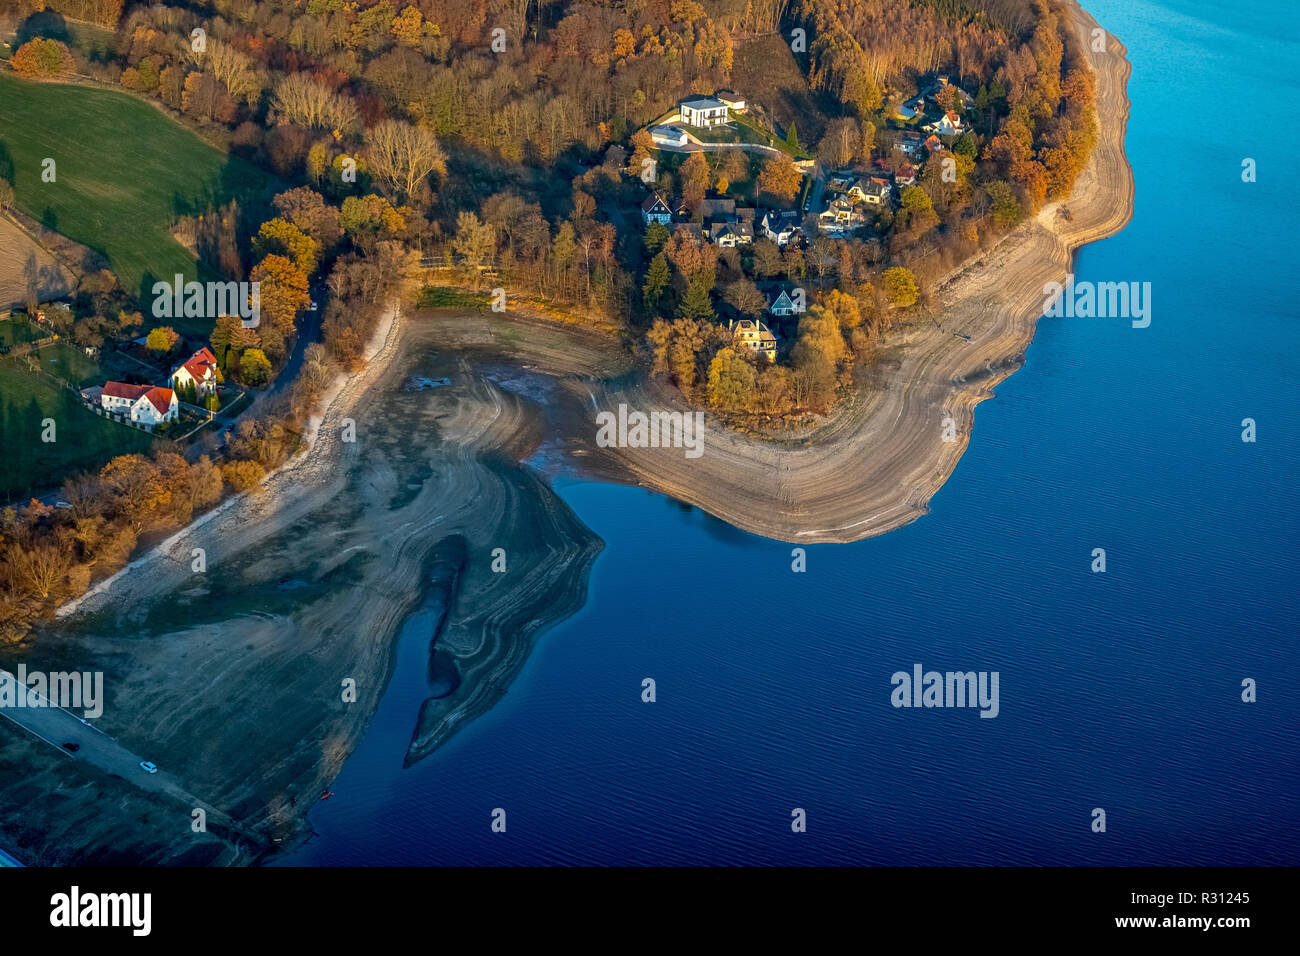 Aerial view, low water Möhnesee, broad shore area, Sauerland, Möhnesee, Arnsberger Wald Nature Park, Haarstrang, North Rhine-Westphalia, Germany, DEU, Stock Photo